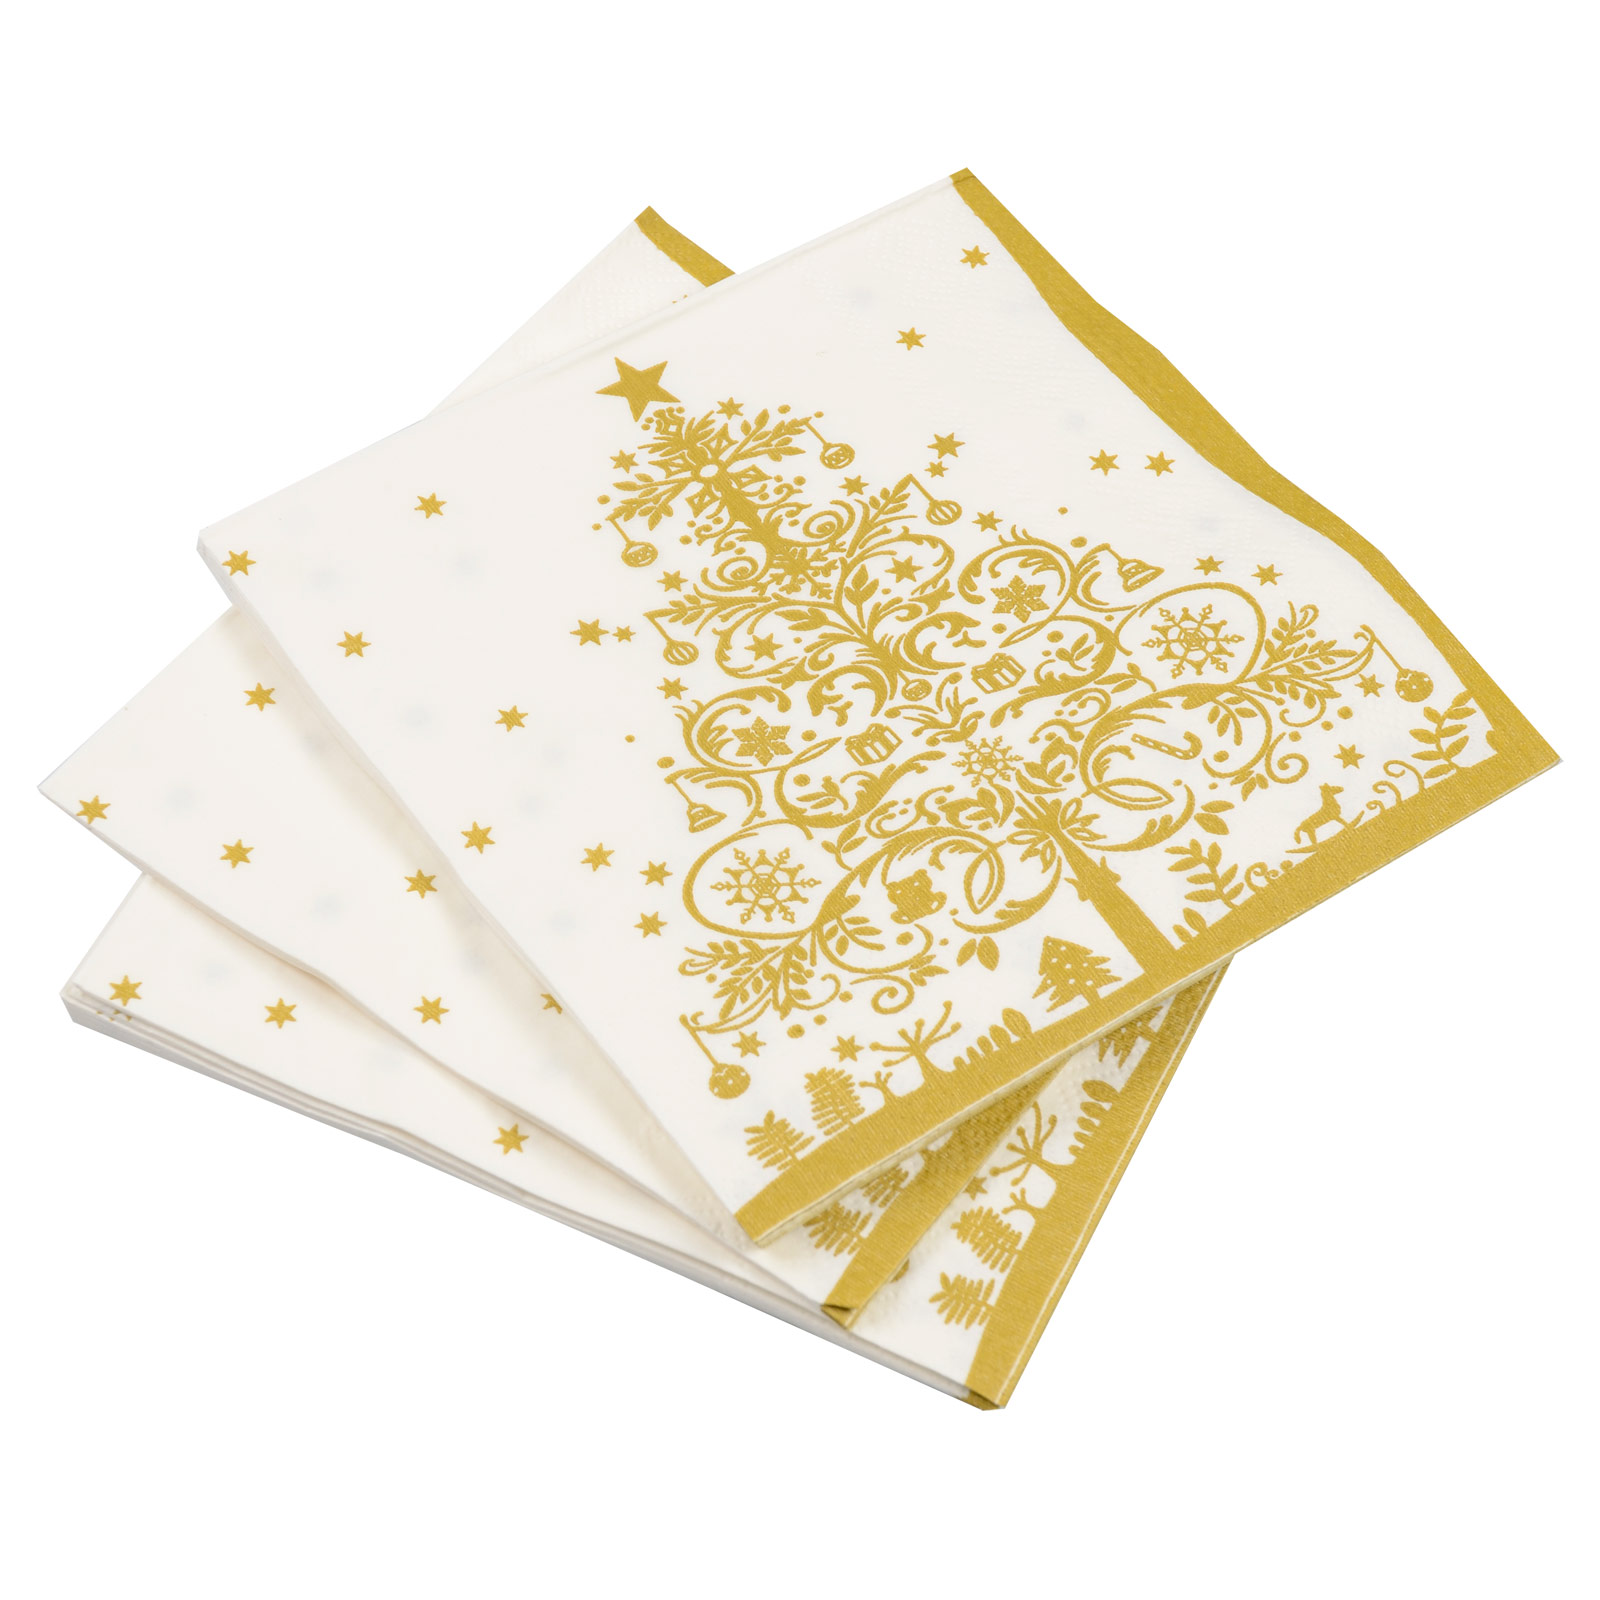 Design your own Affordable Personalized Party Napkins for any event printed fast!